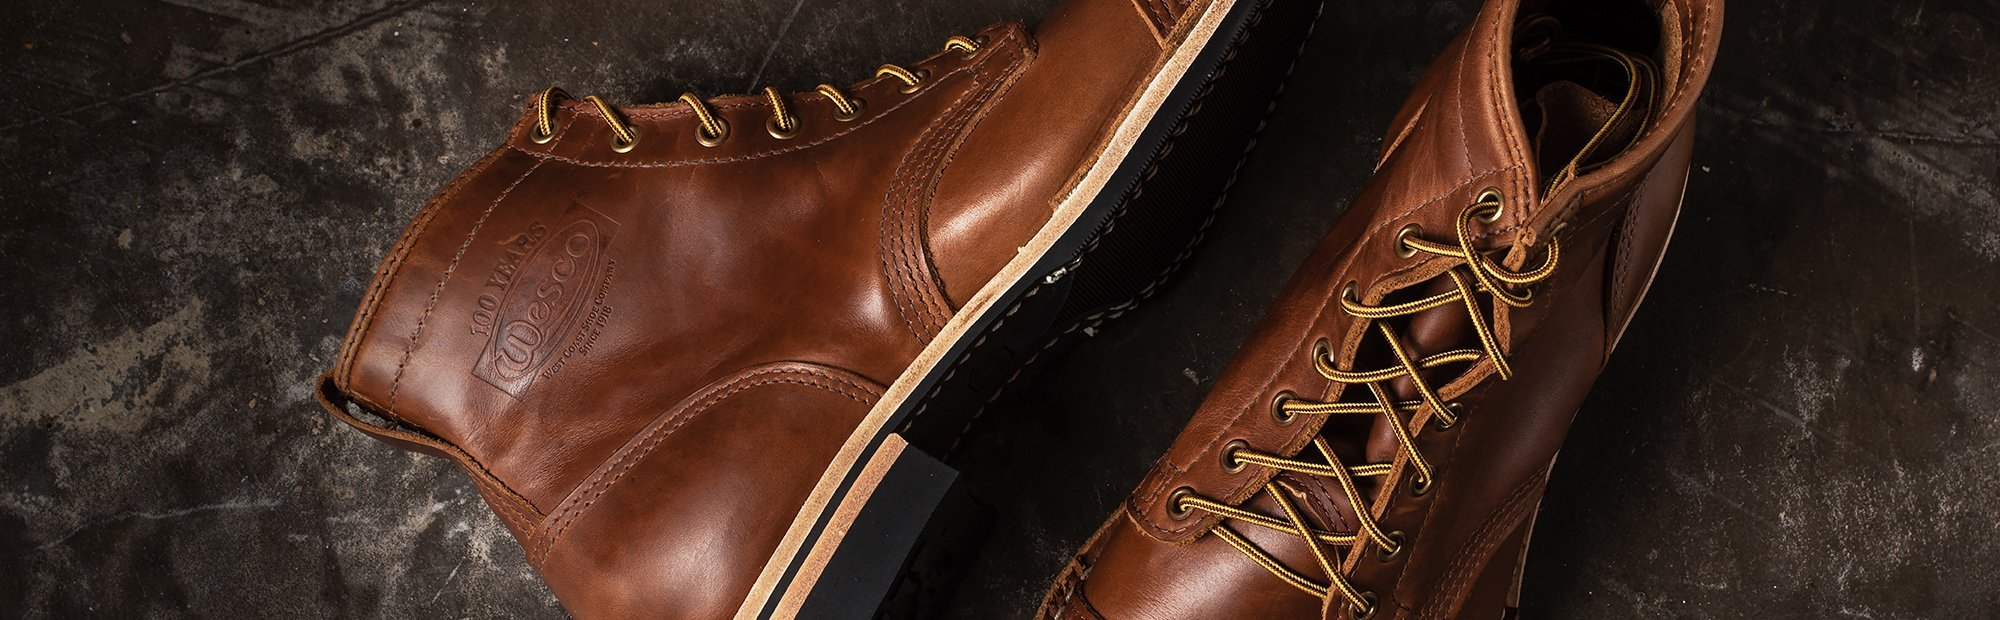 official site 100% quality big discount Wesco Boots - Iron Heart International